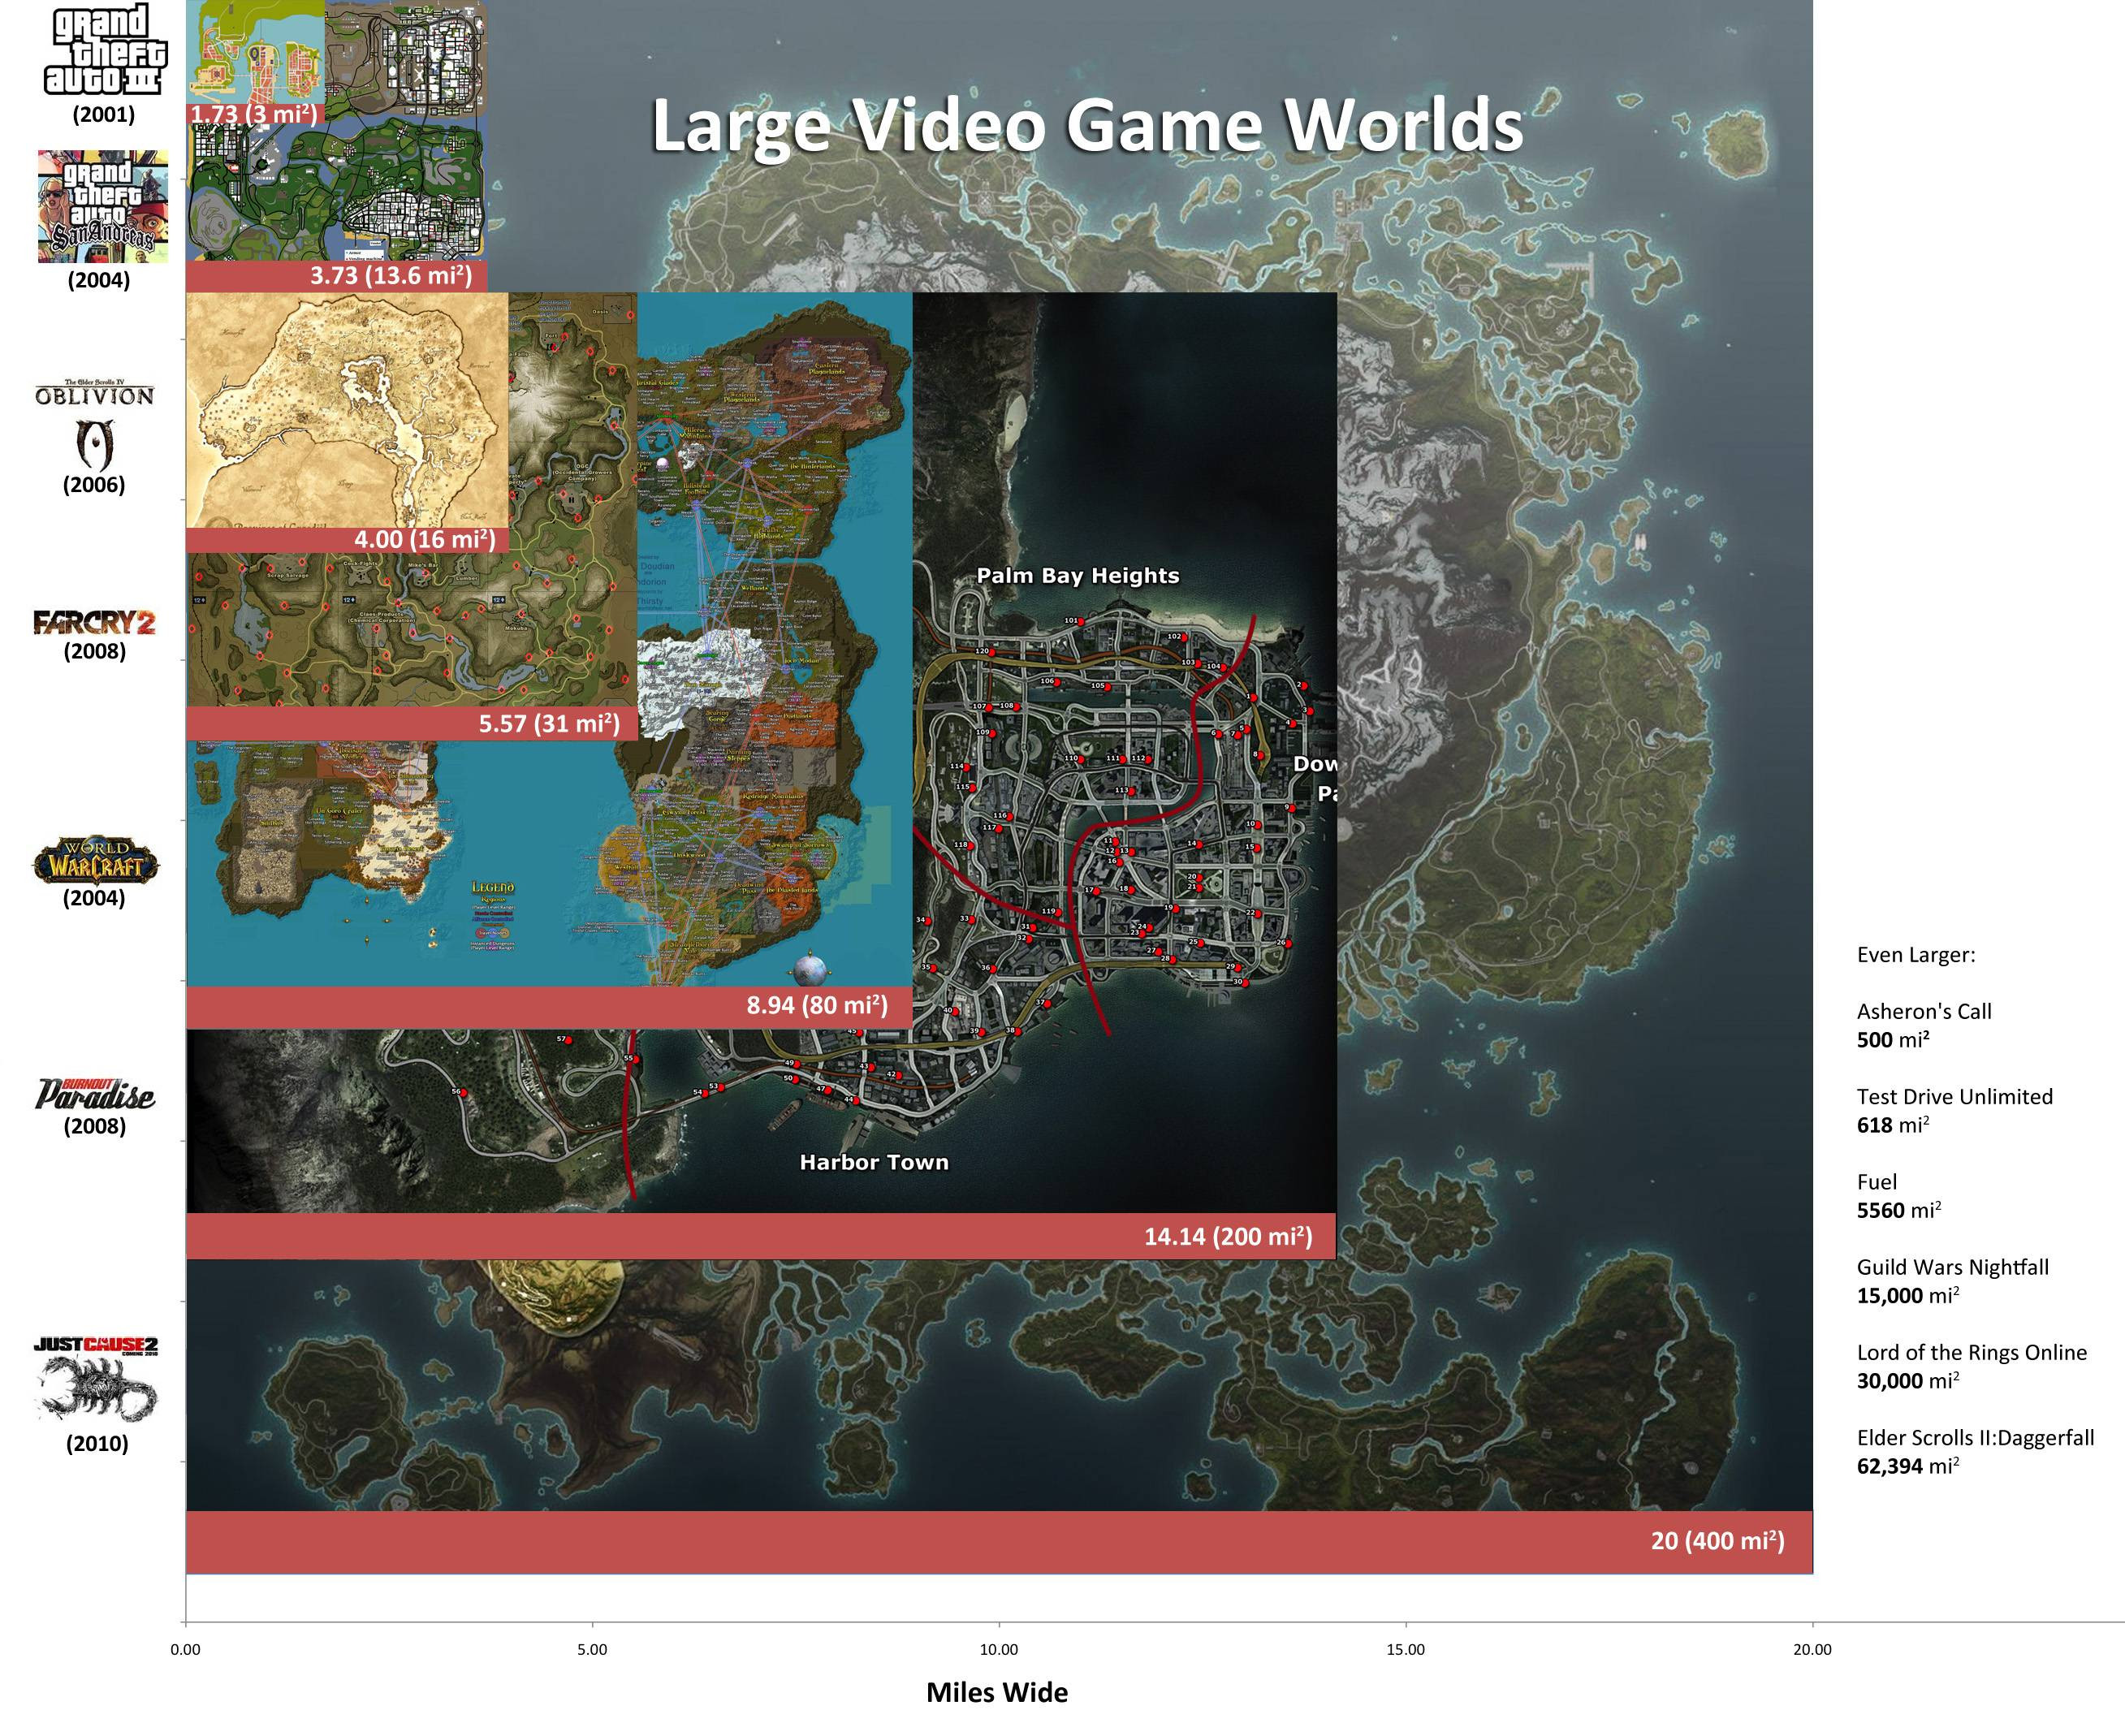 Large-Video-Game-Worlds